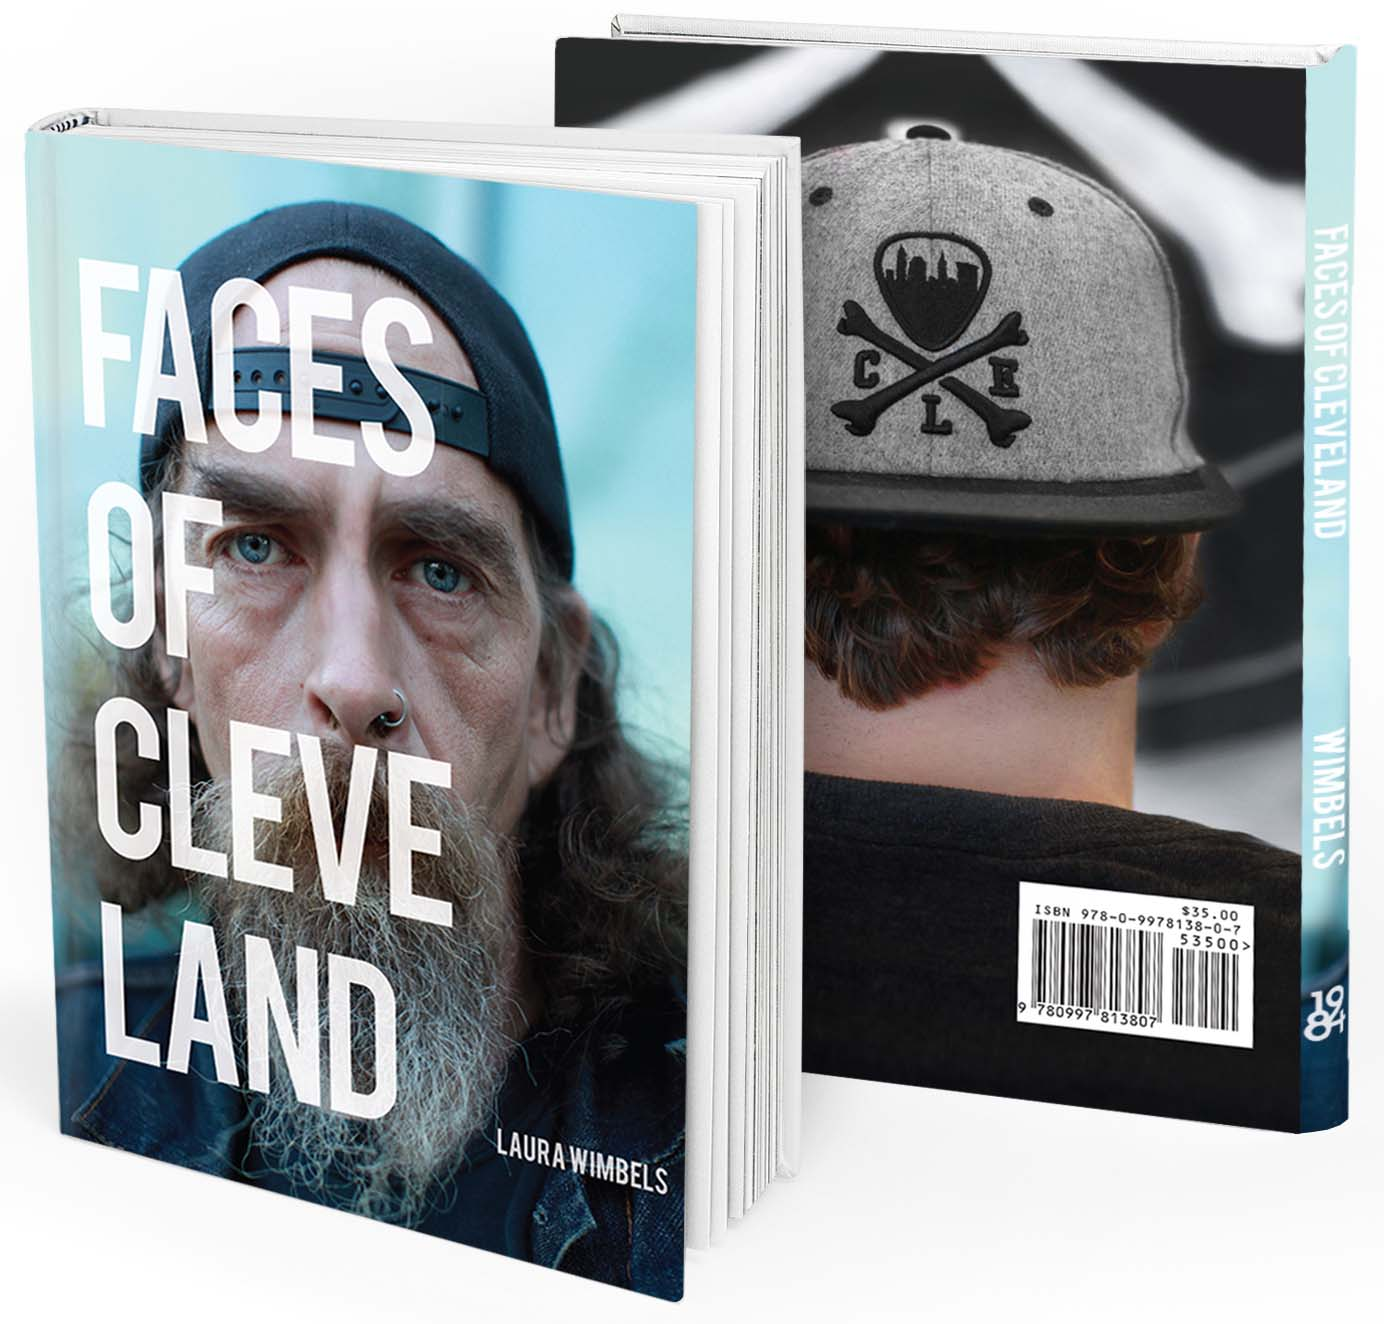 Cleveland native and photographer Laura Wimbels brings you more than 100 familiar faces within the spaces of Cleveland, Ohio - forever the comeback city! $35 | Hardbound | 132 pages | 8.5 x 11 inches